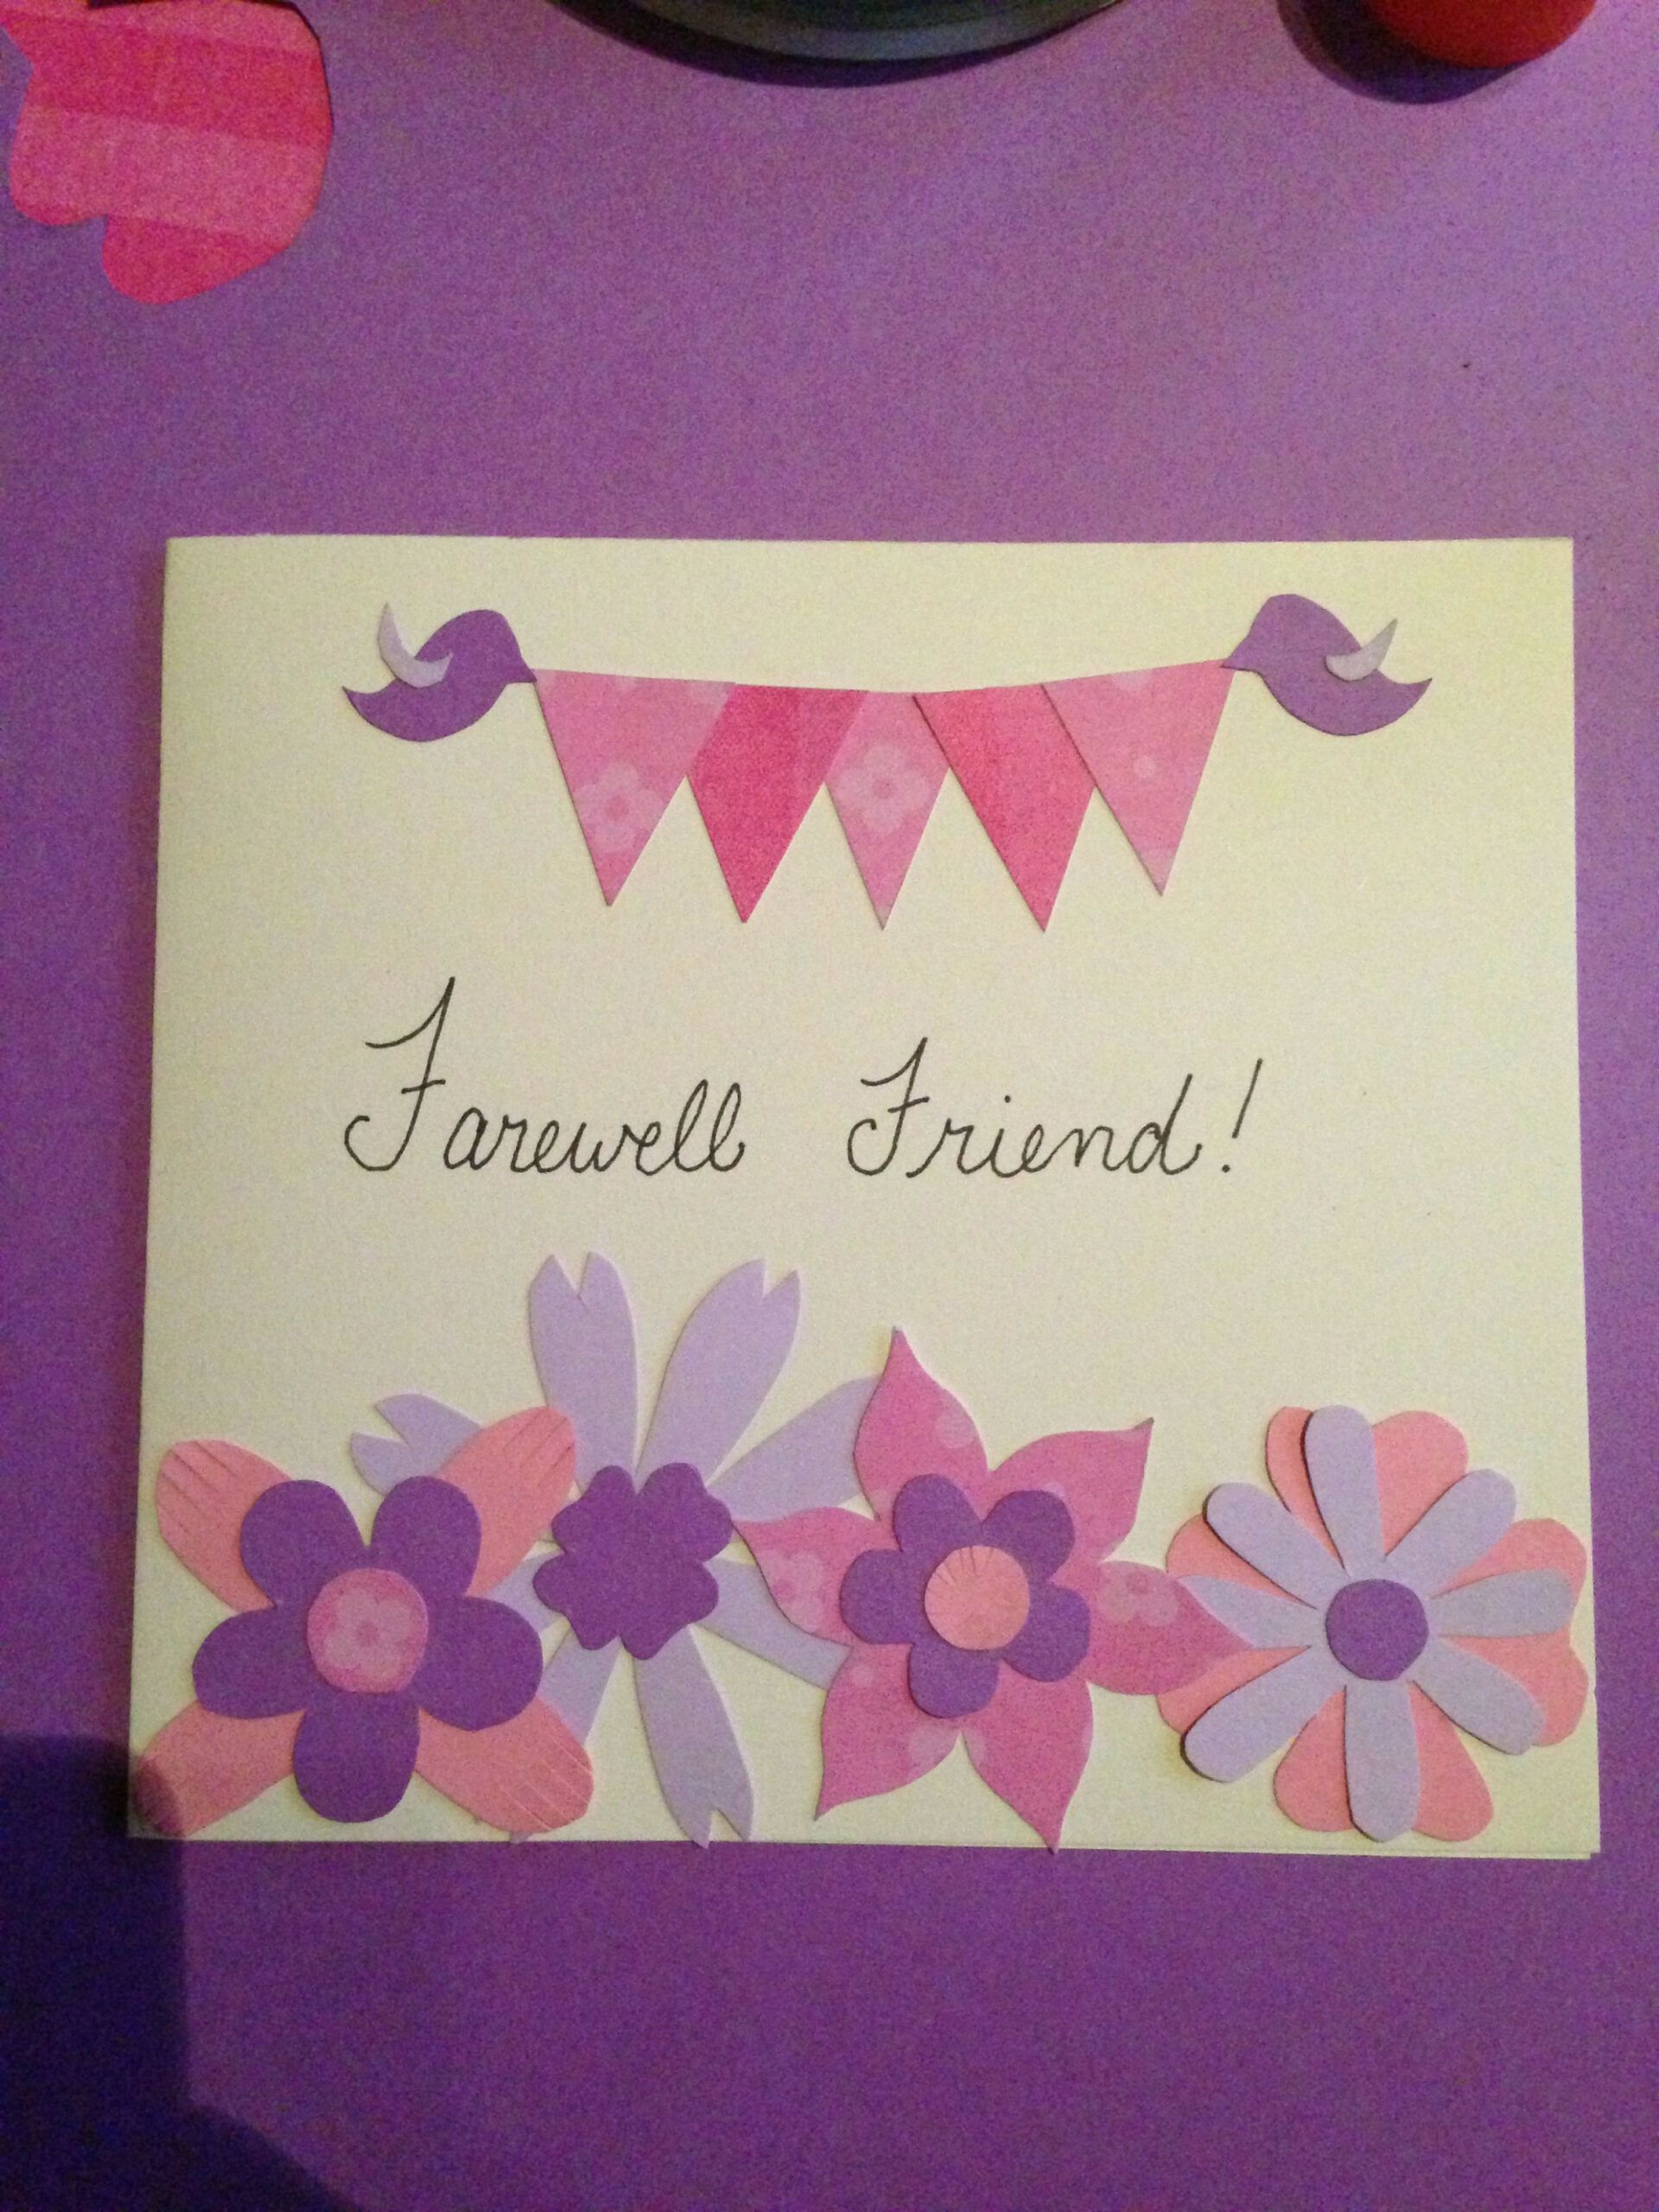 Diy Farewell Card Made From Construction Paper Card Making Card Design Handmade Paper Crafts Cards Card Craft